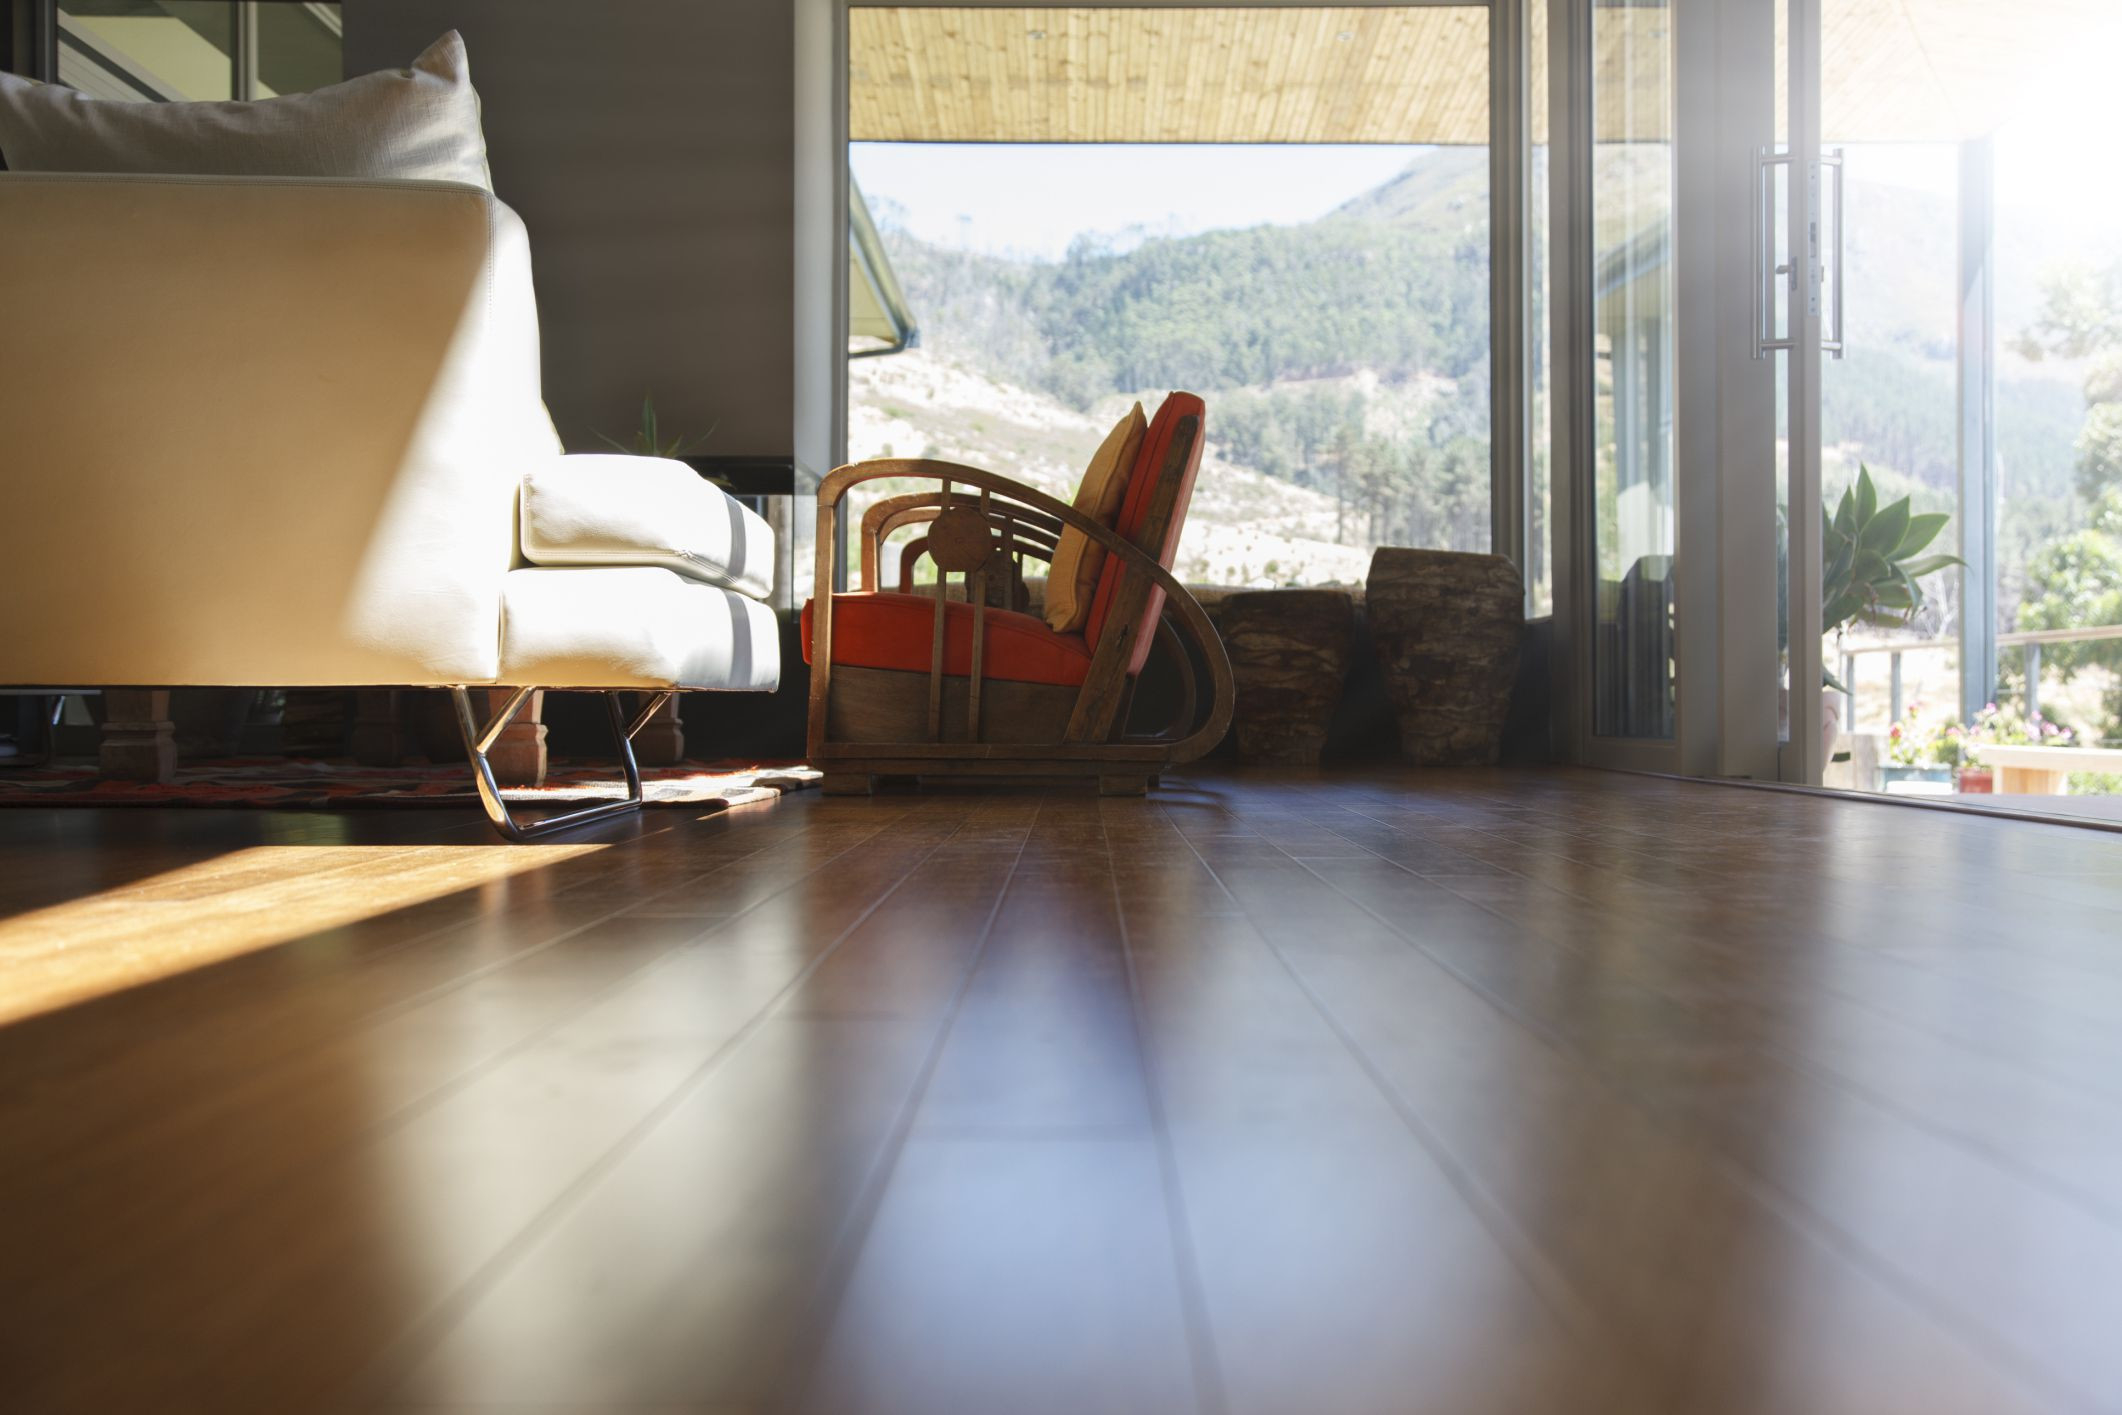 laminate hardwood flooring pros and cons of floating floors basics types and pros and cons for exotic hardwood flooring 525439899 56a49d3a3df78cf77283453d